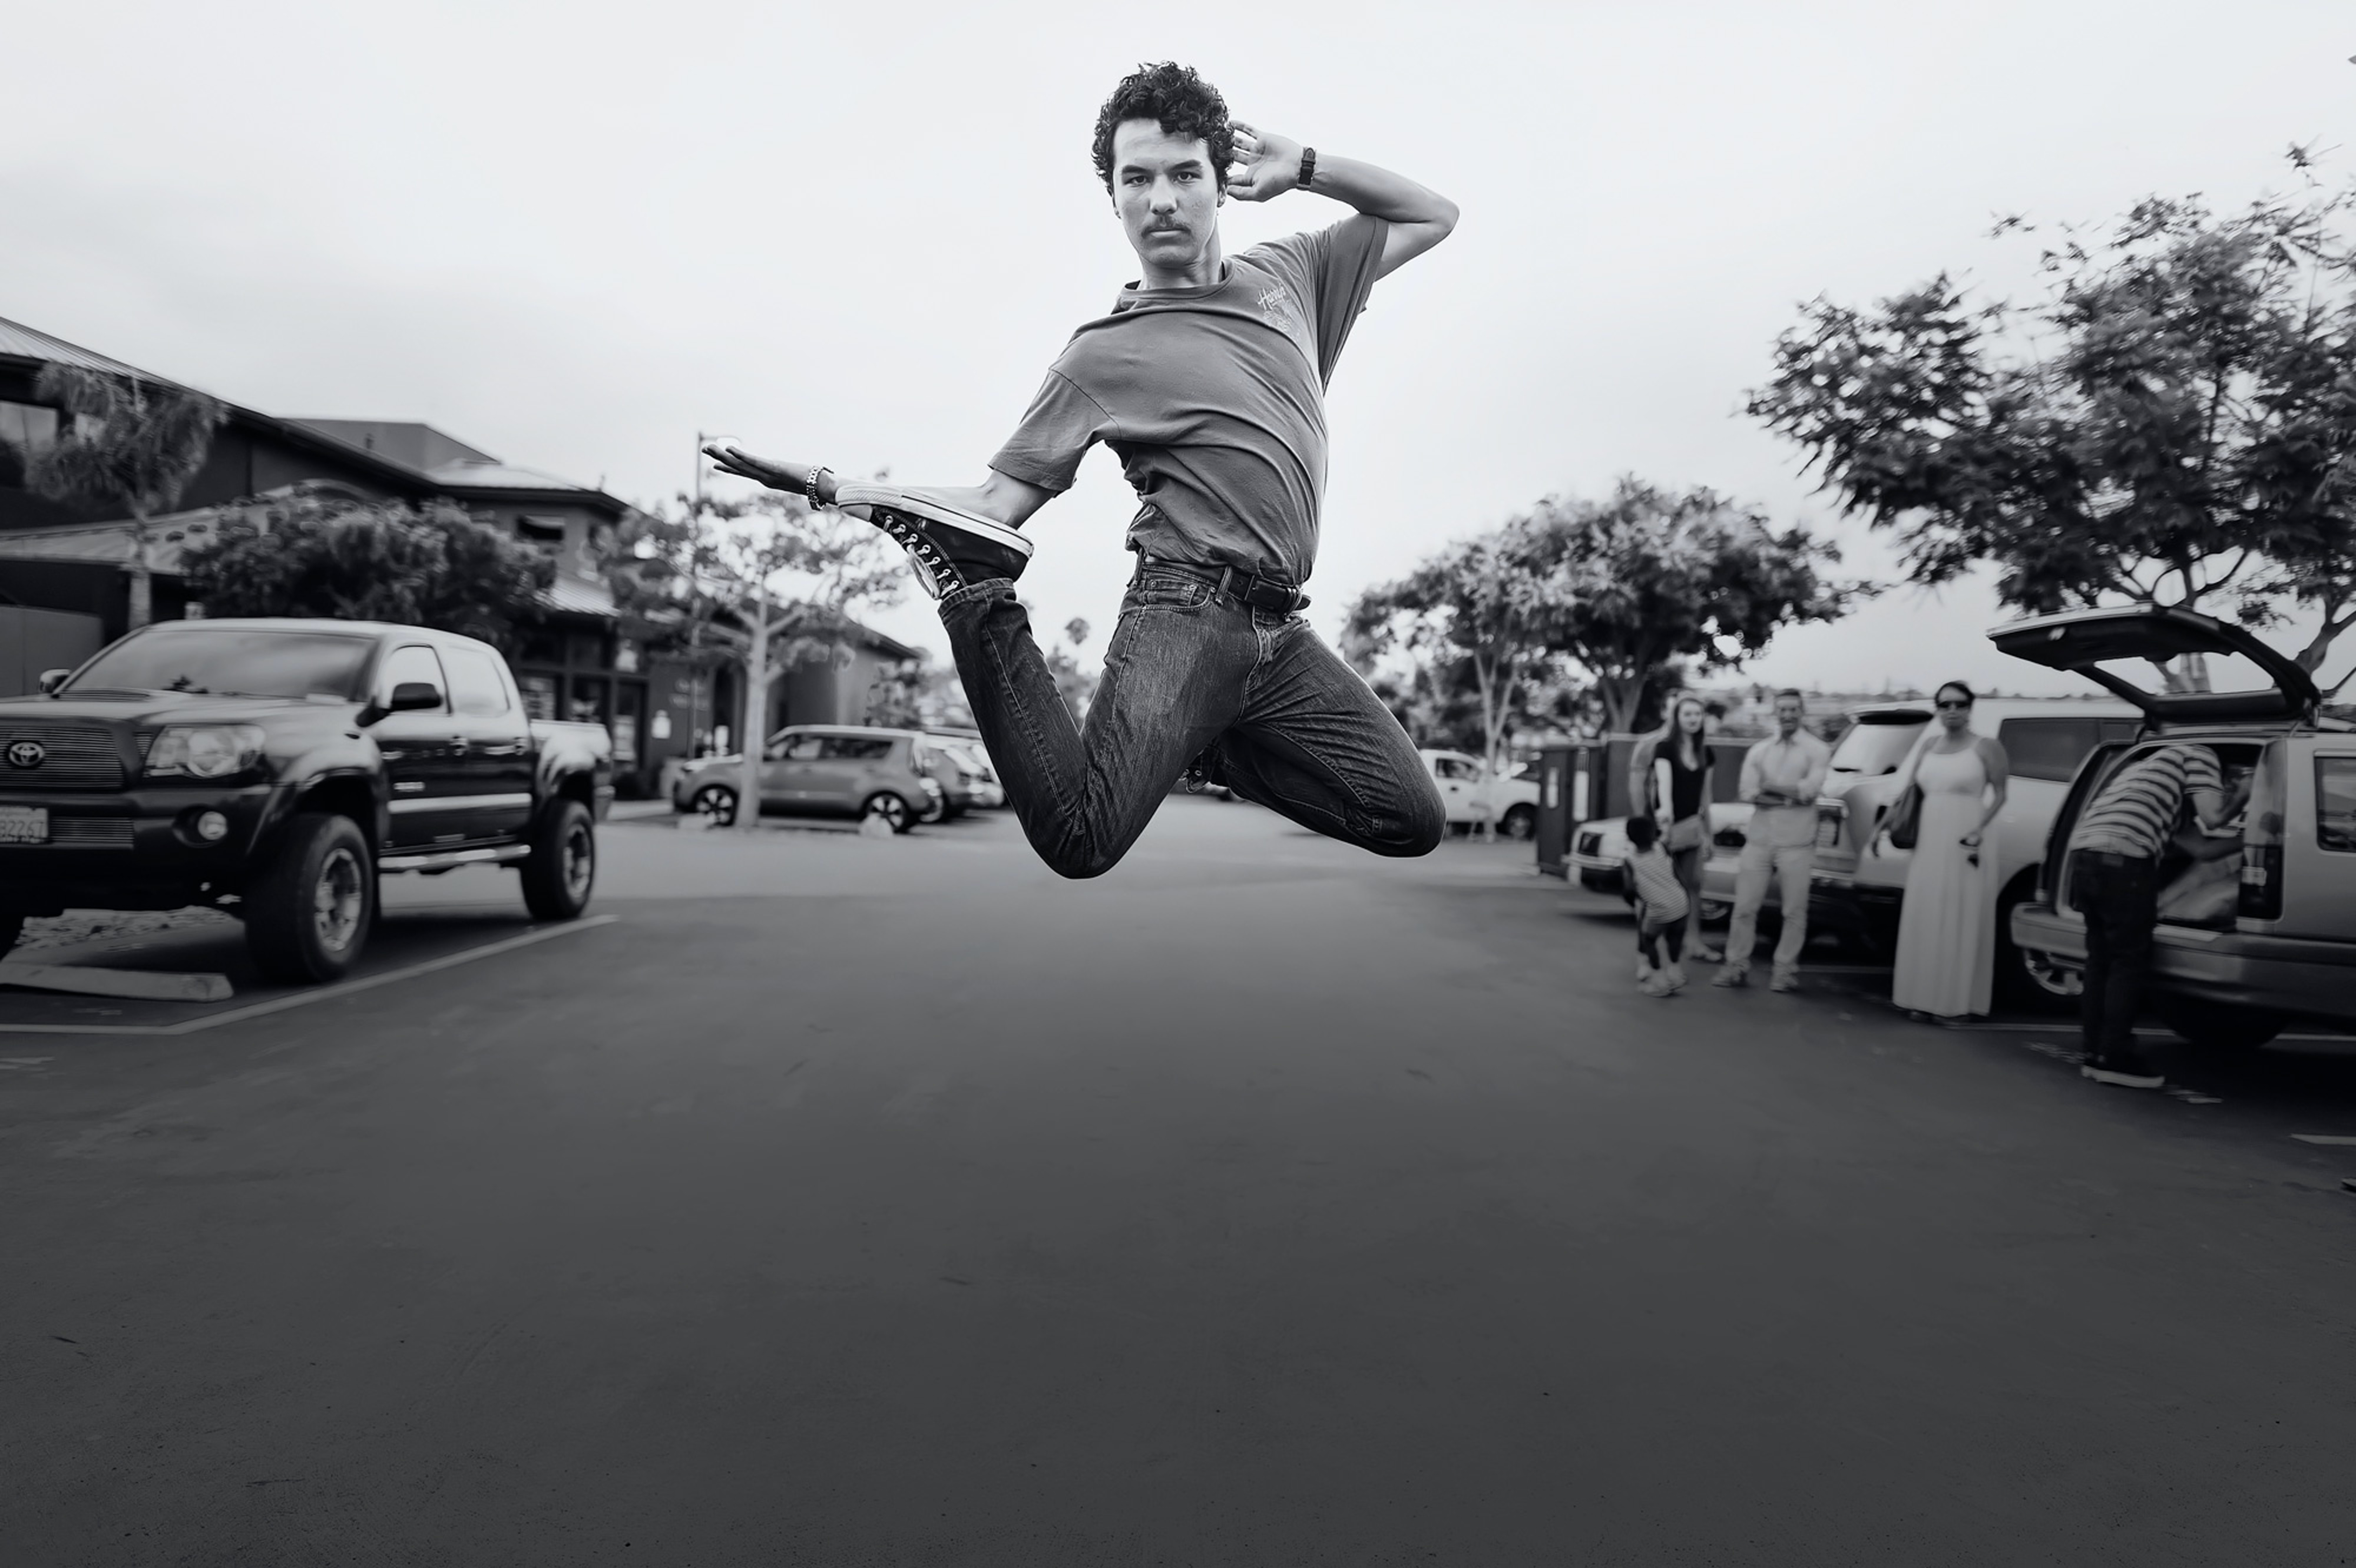 grayscale jumping photo of man